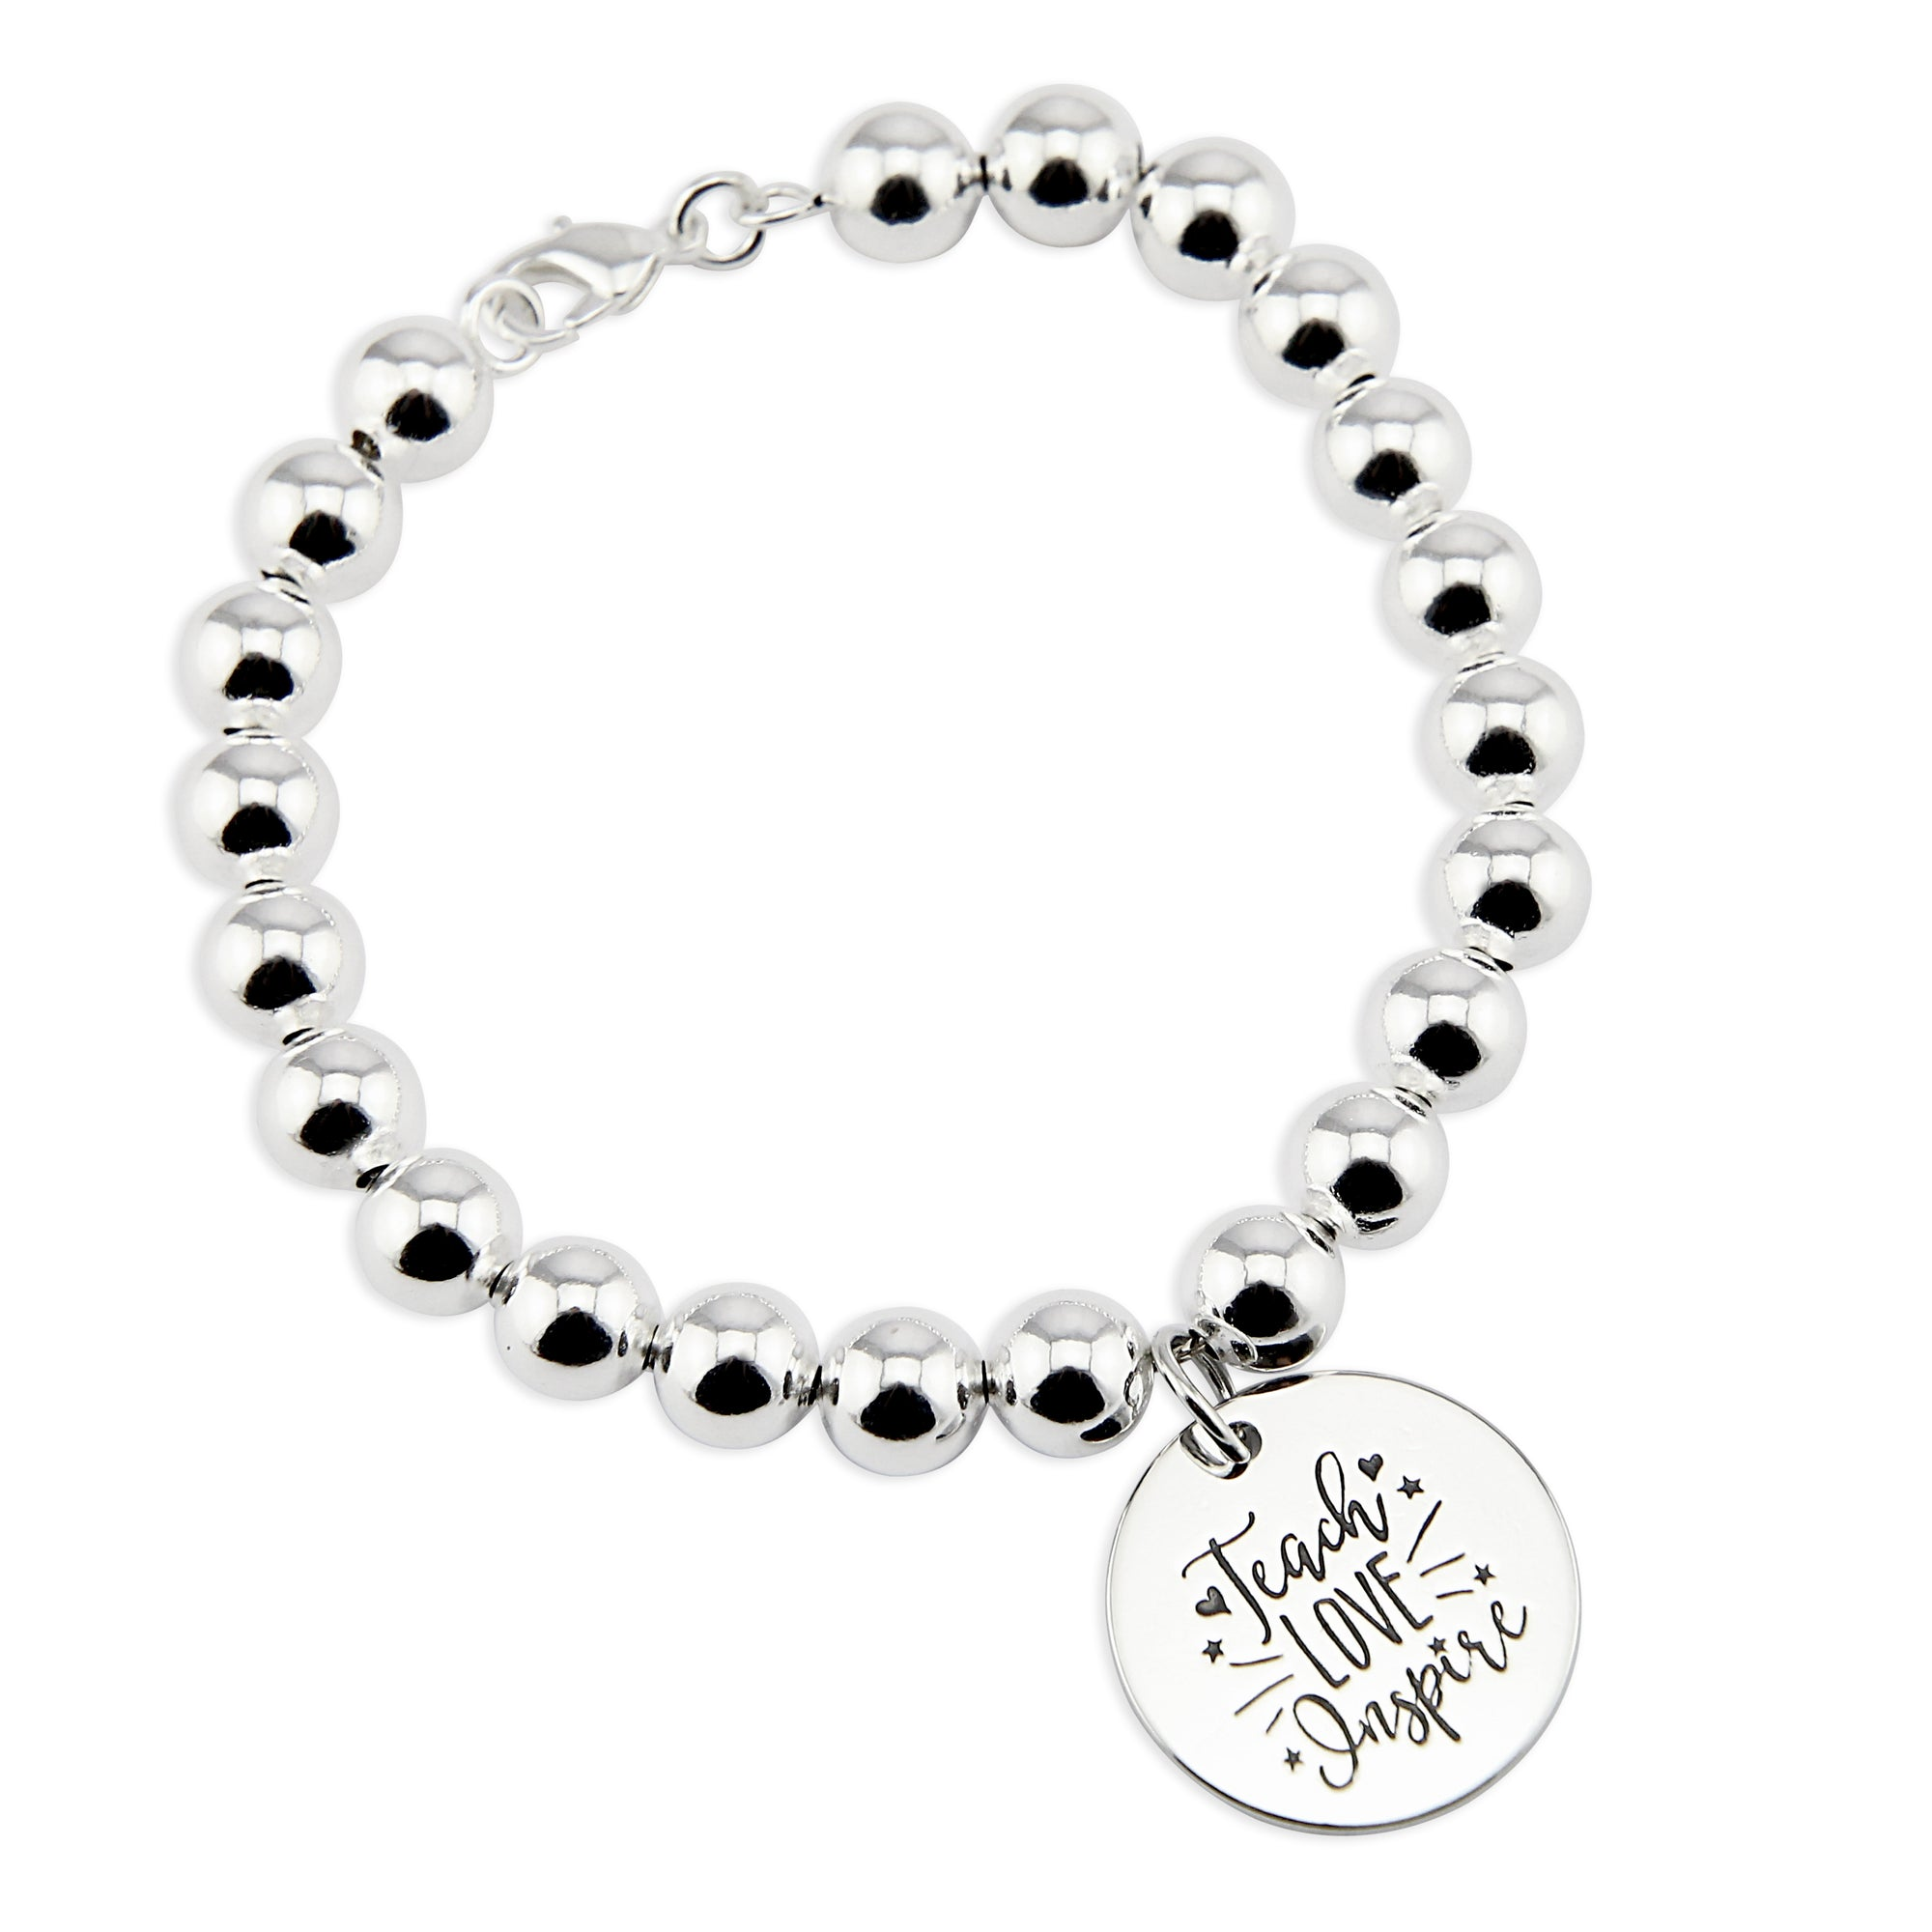 Silver Ball Bracelet 8mm - TEACH LOVE INSPIRE (5010-5)